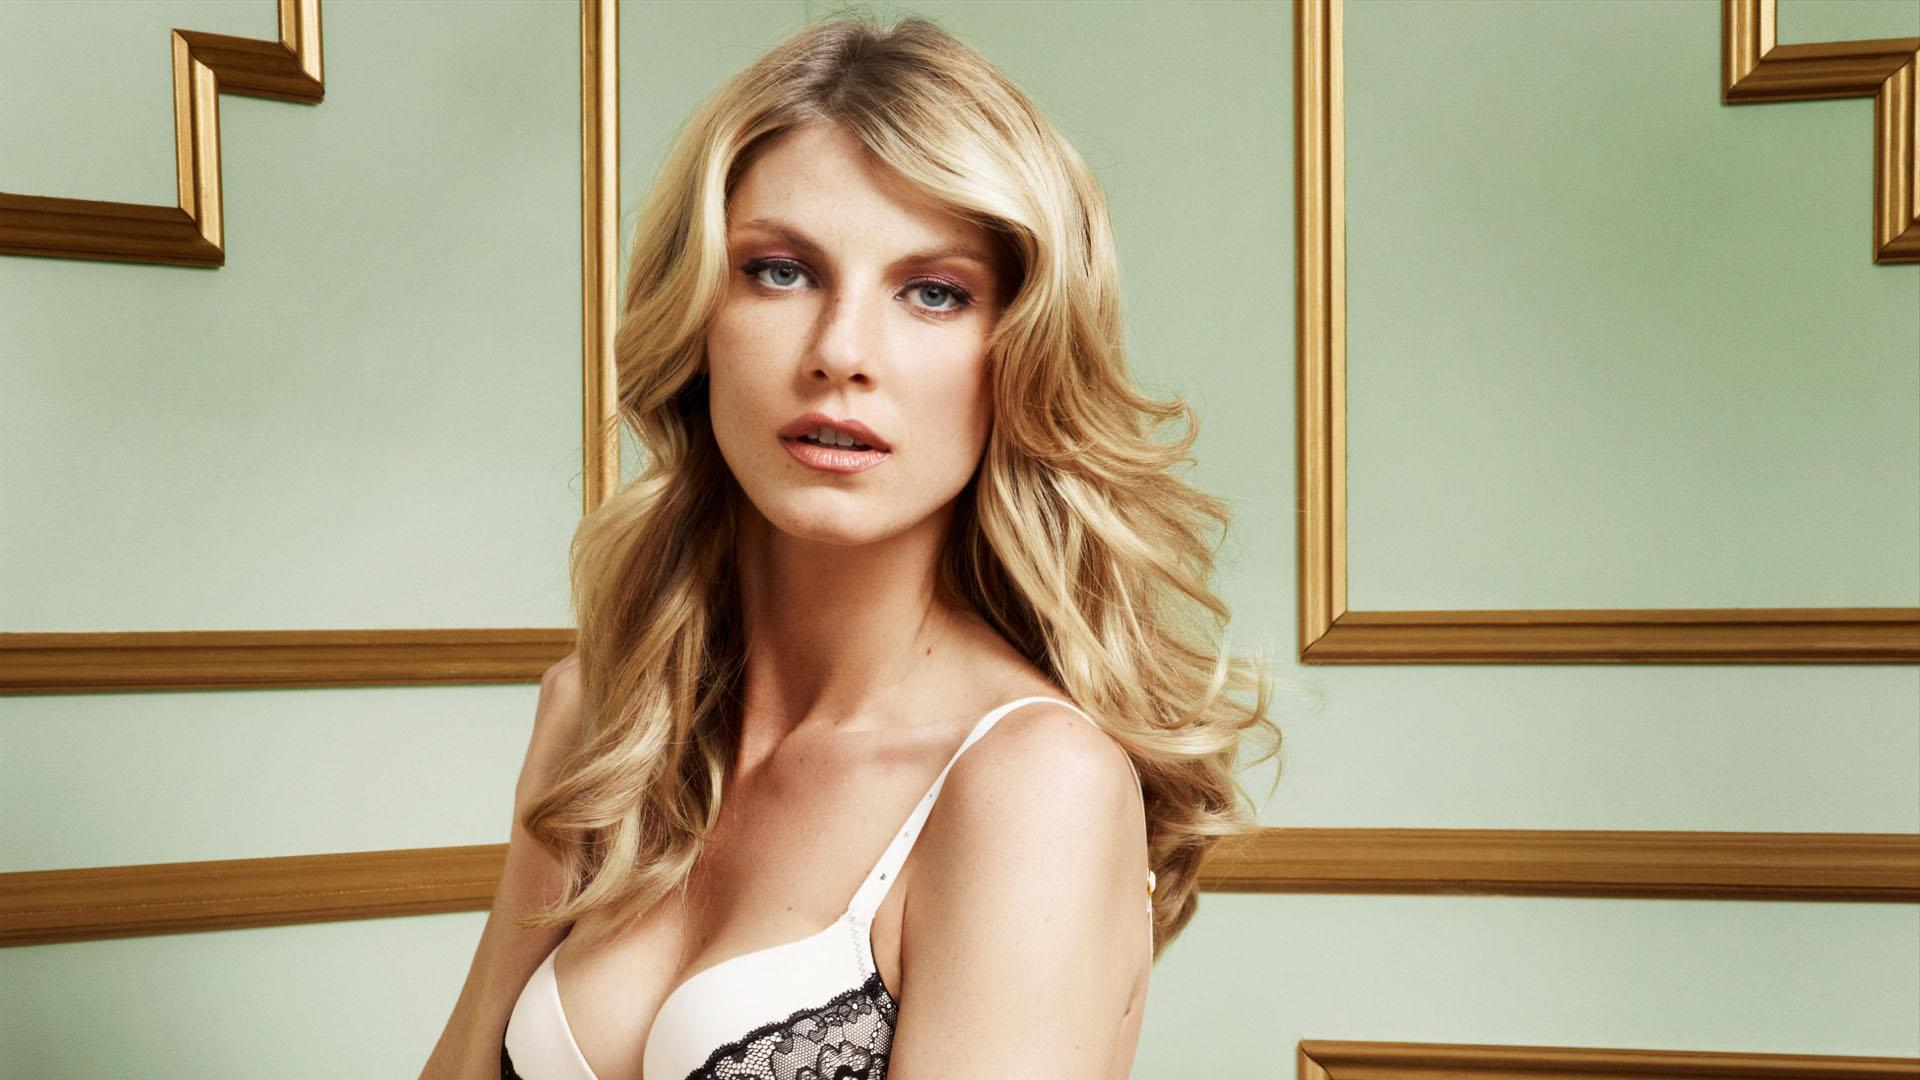 Hot Angela Lindvall naked (65 photos), Topless, Bikini, Instagram, underwear 2020